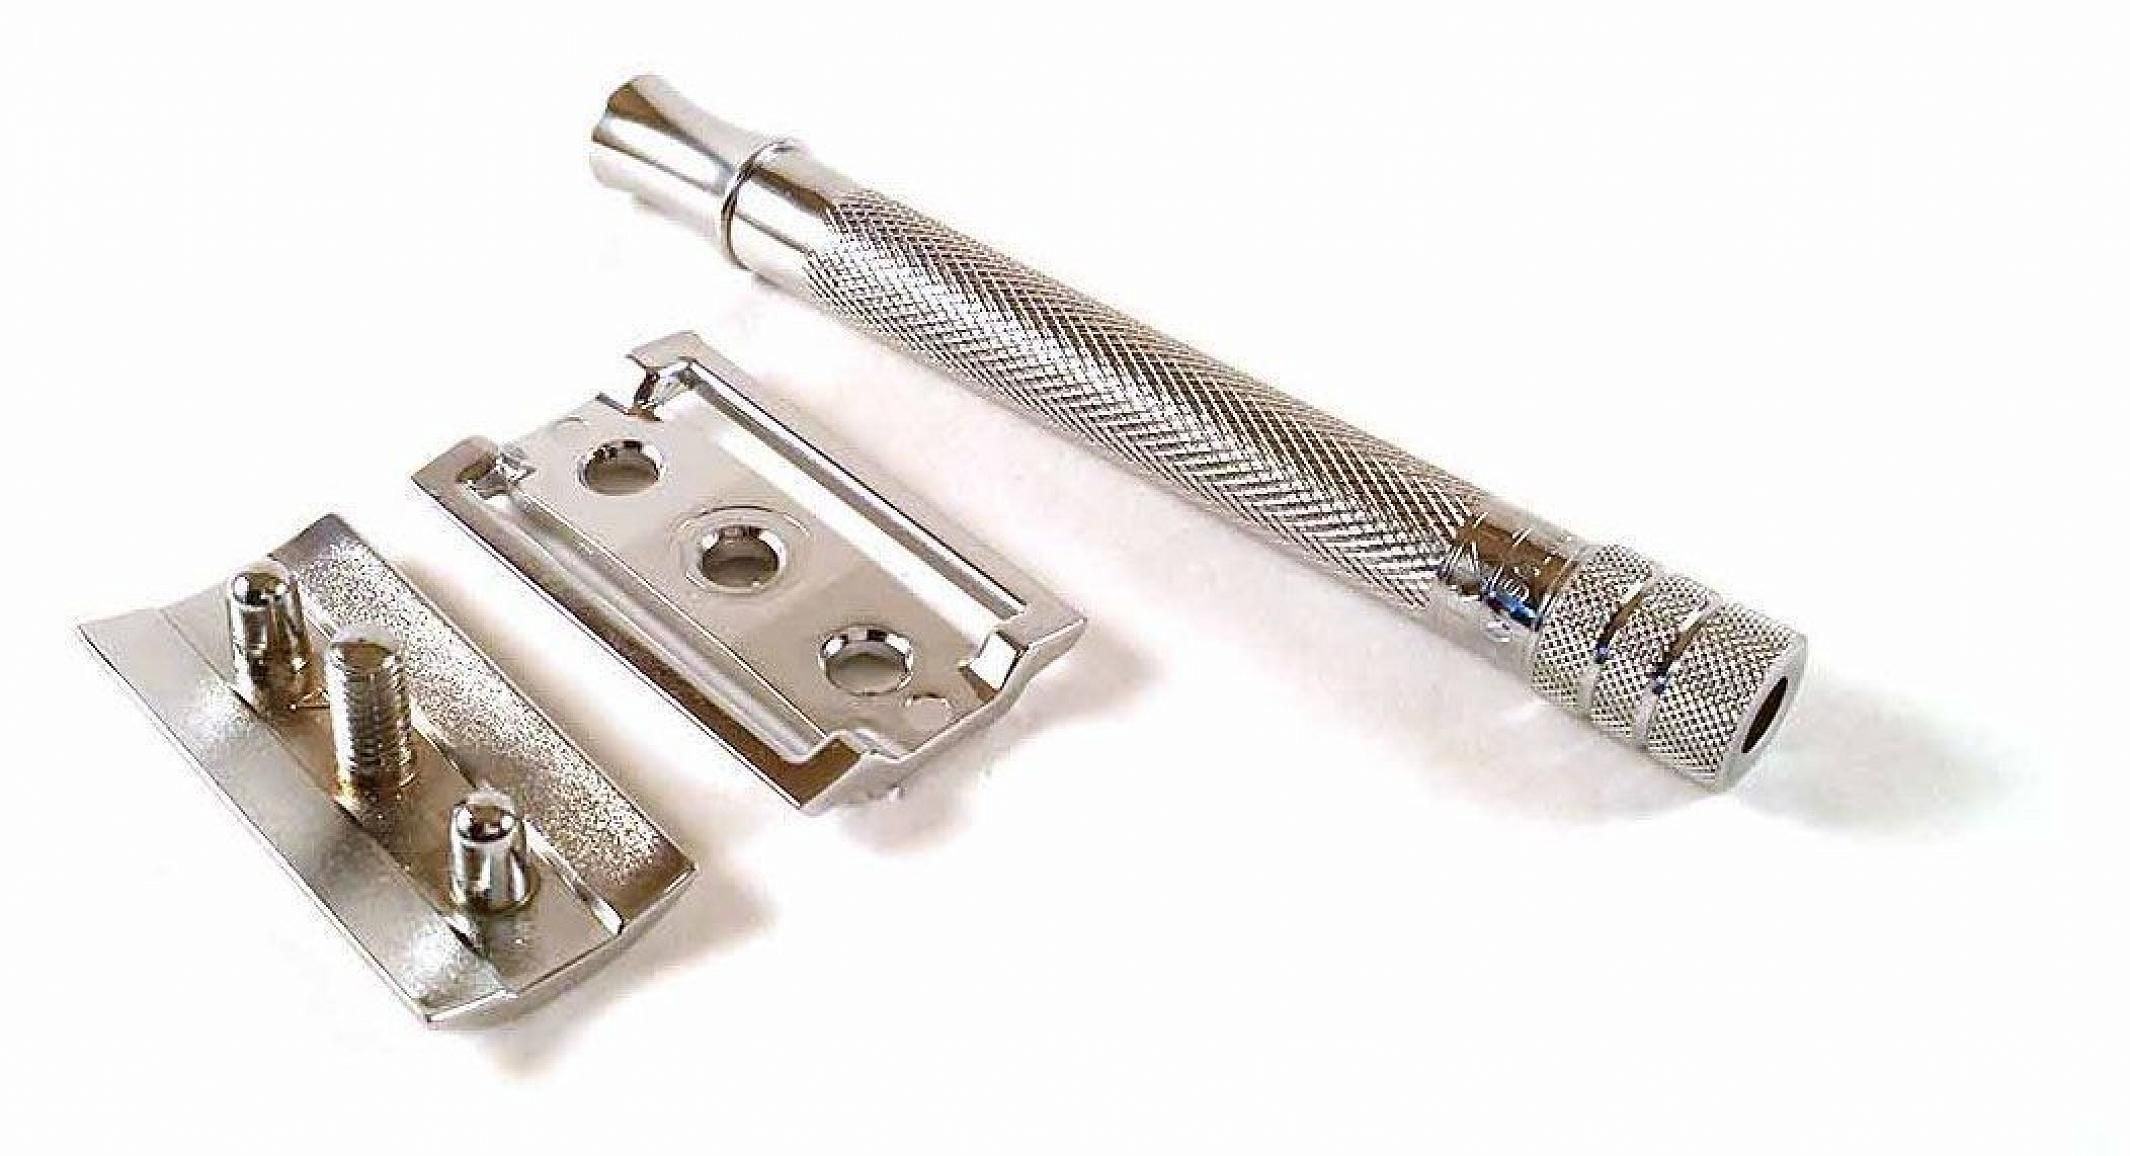 A typical three-piece DE razor